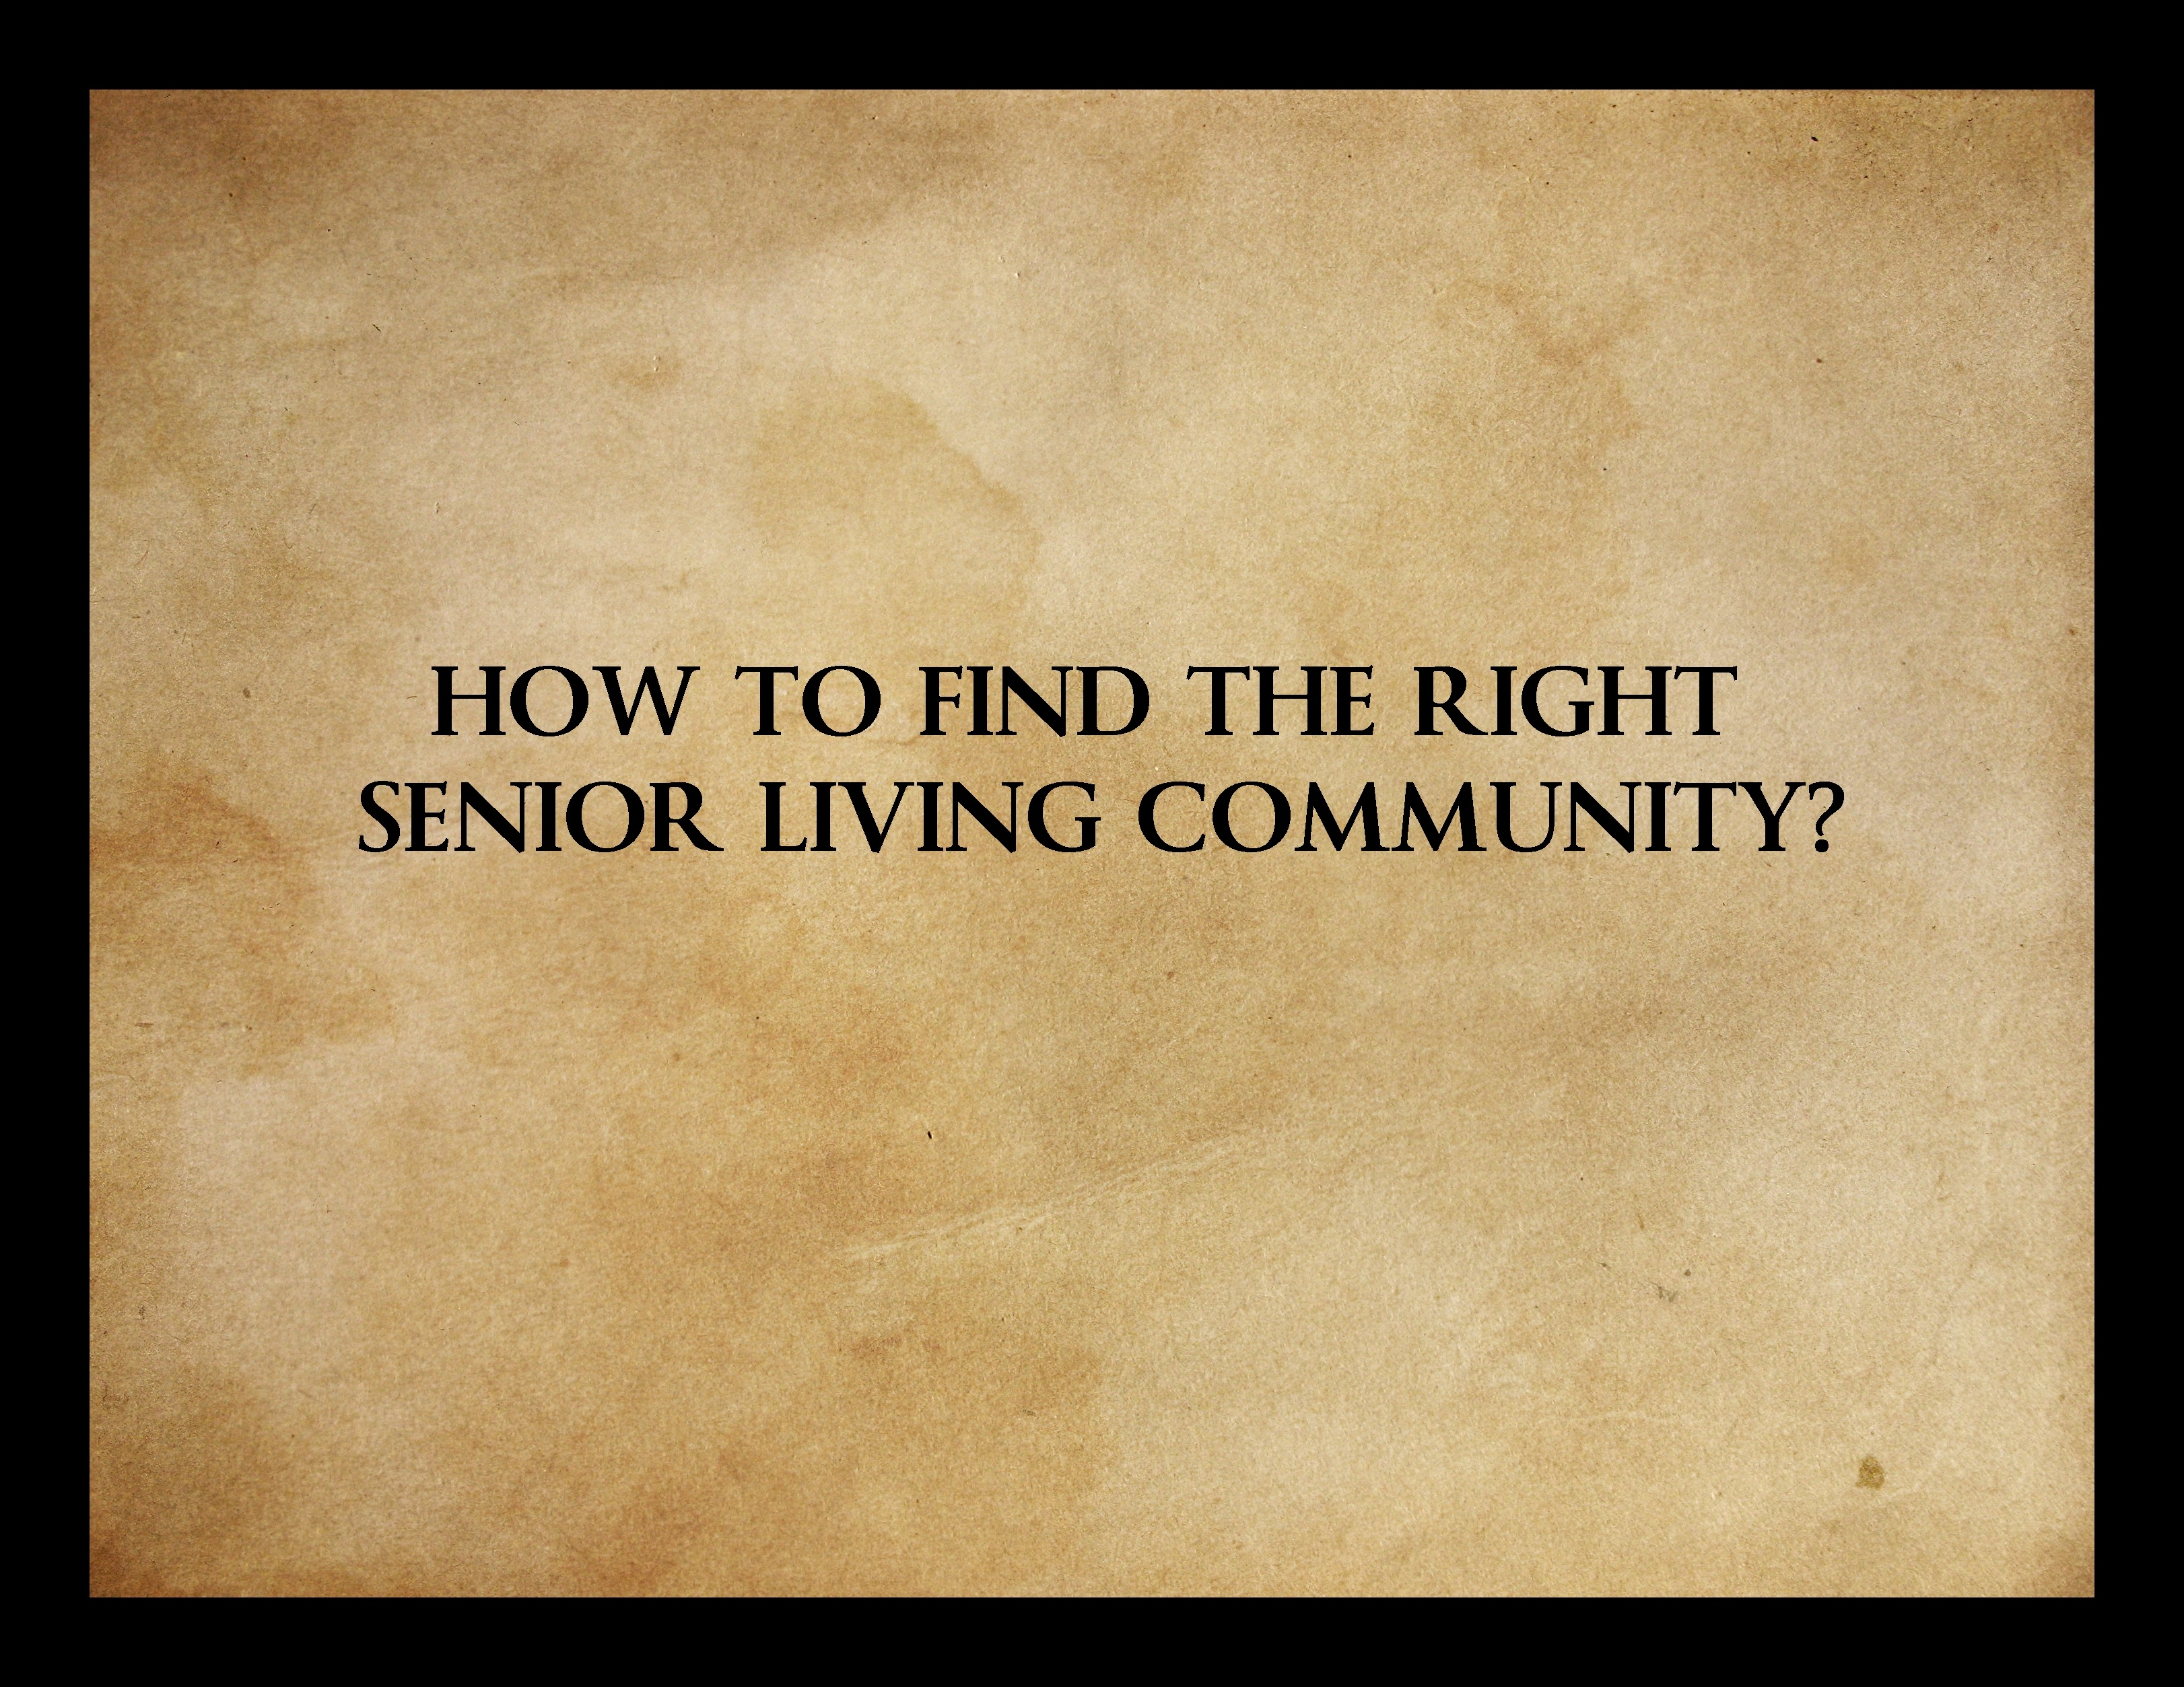 HOW TO FIND THE RIGHT SENIOR LIVING COMMUNITY?